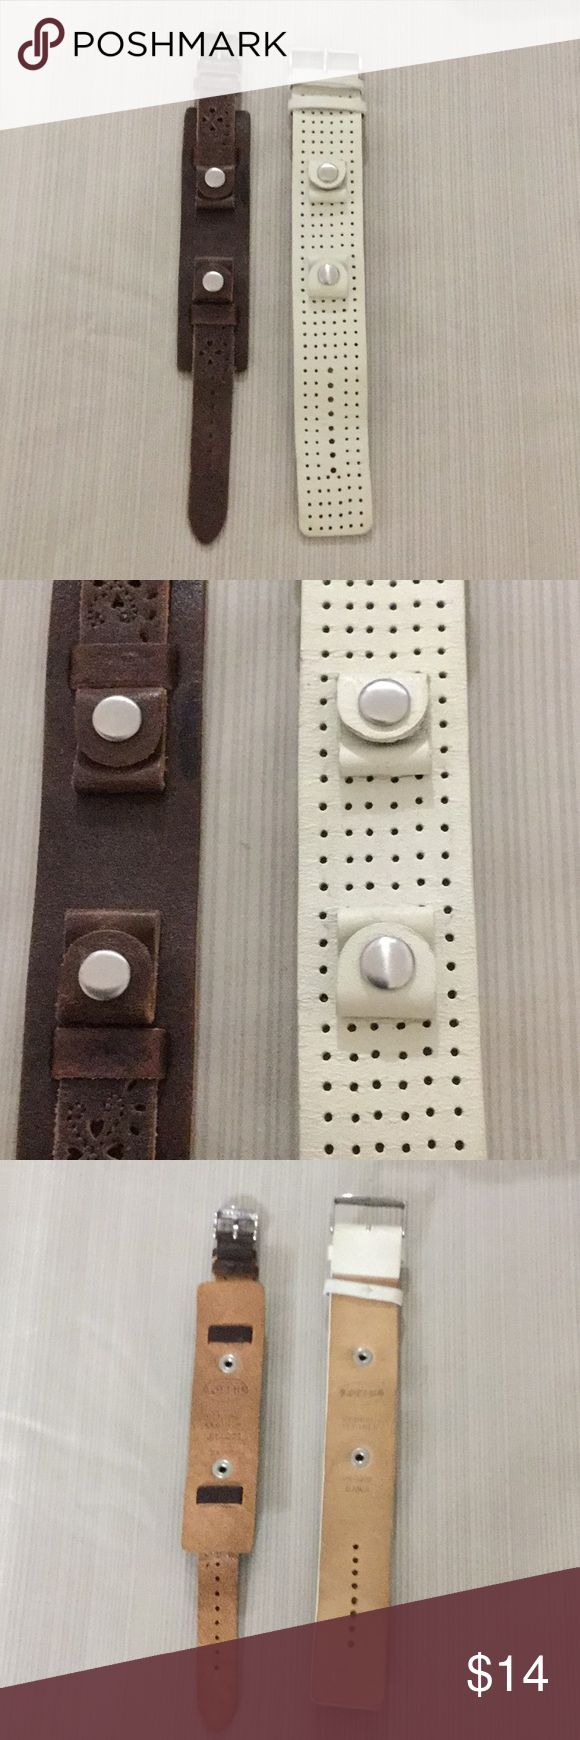 """Fossil Leather Watch Bands The brown band is new and the white band has some wear.  Brown band 1 1/4"""" at the widest point.  White band is 1 1/4"""" wide. Fossil Accessories"""